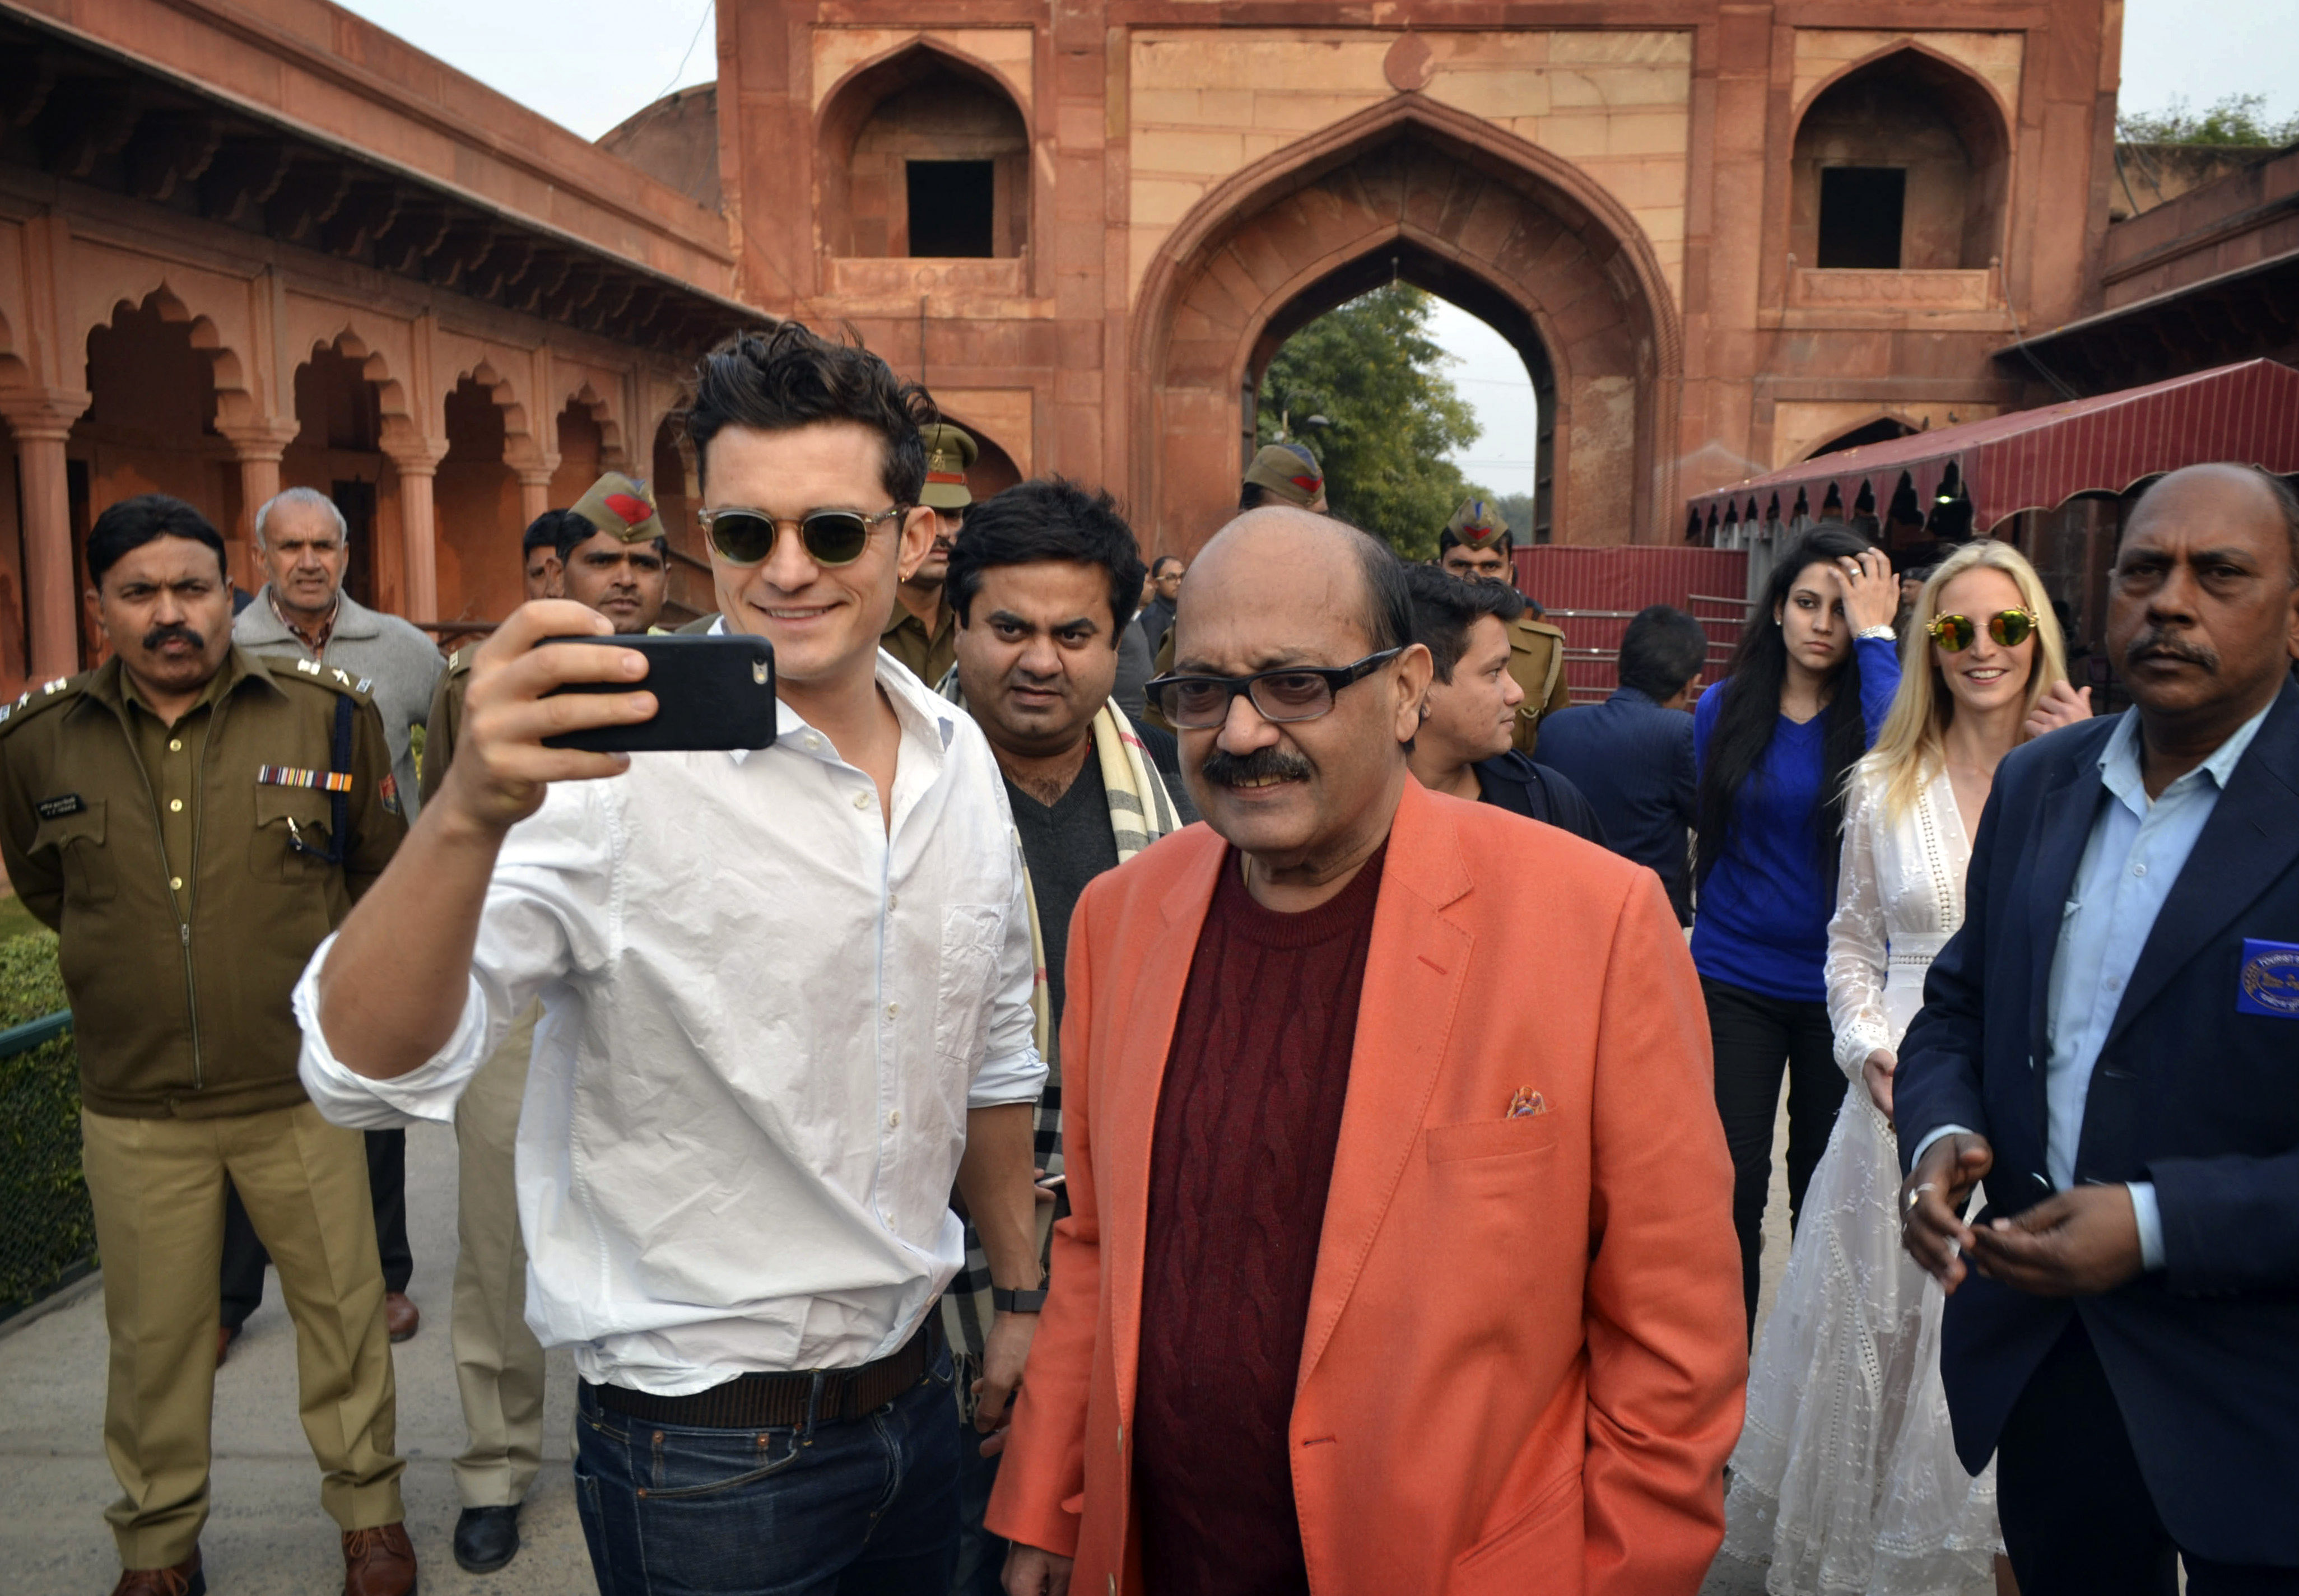 Orlando Bloom deported from India, despite being invited there by the government